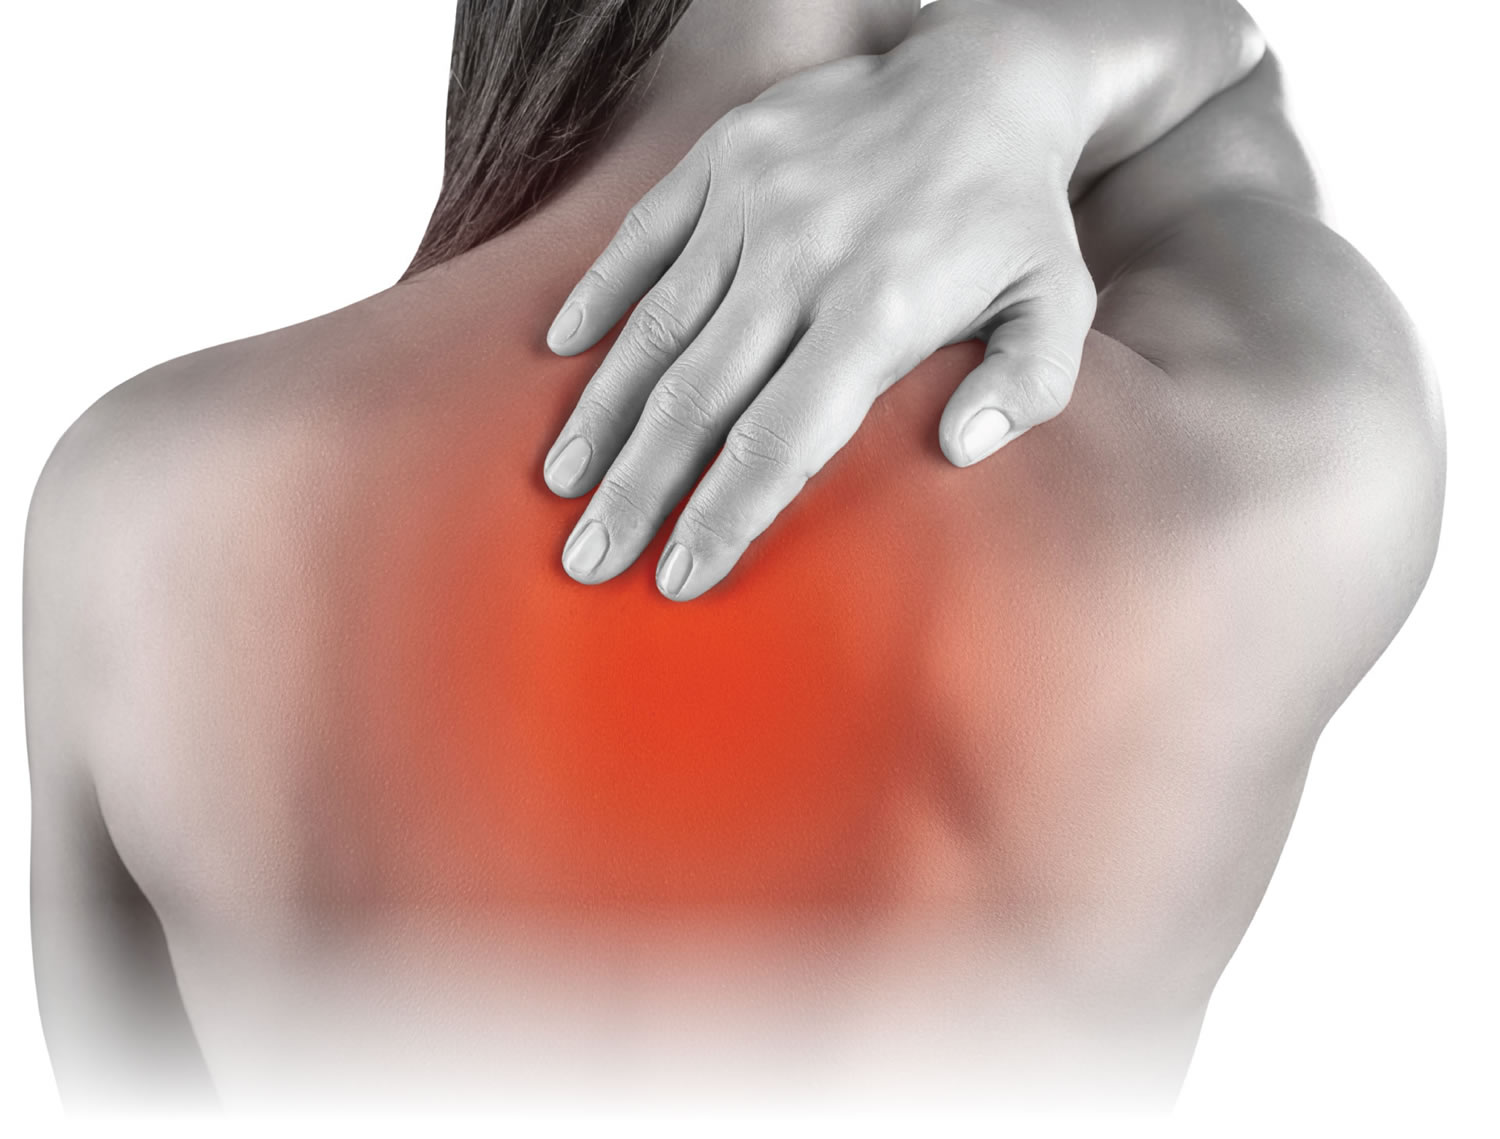 Taking Care Of Your Back Pain - Steps To Follow